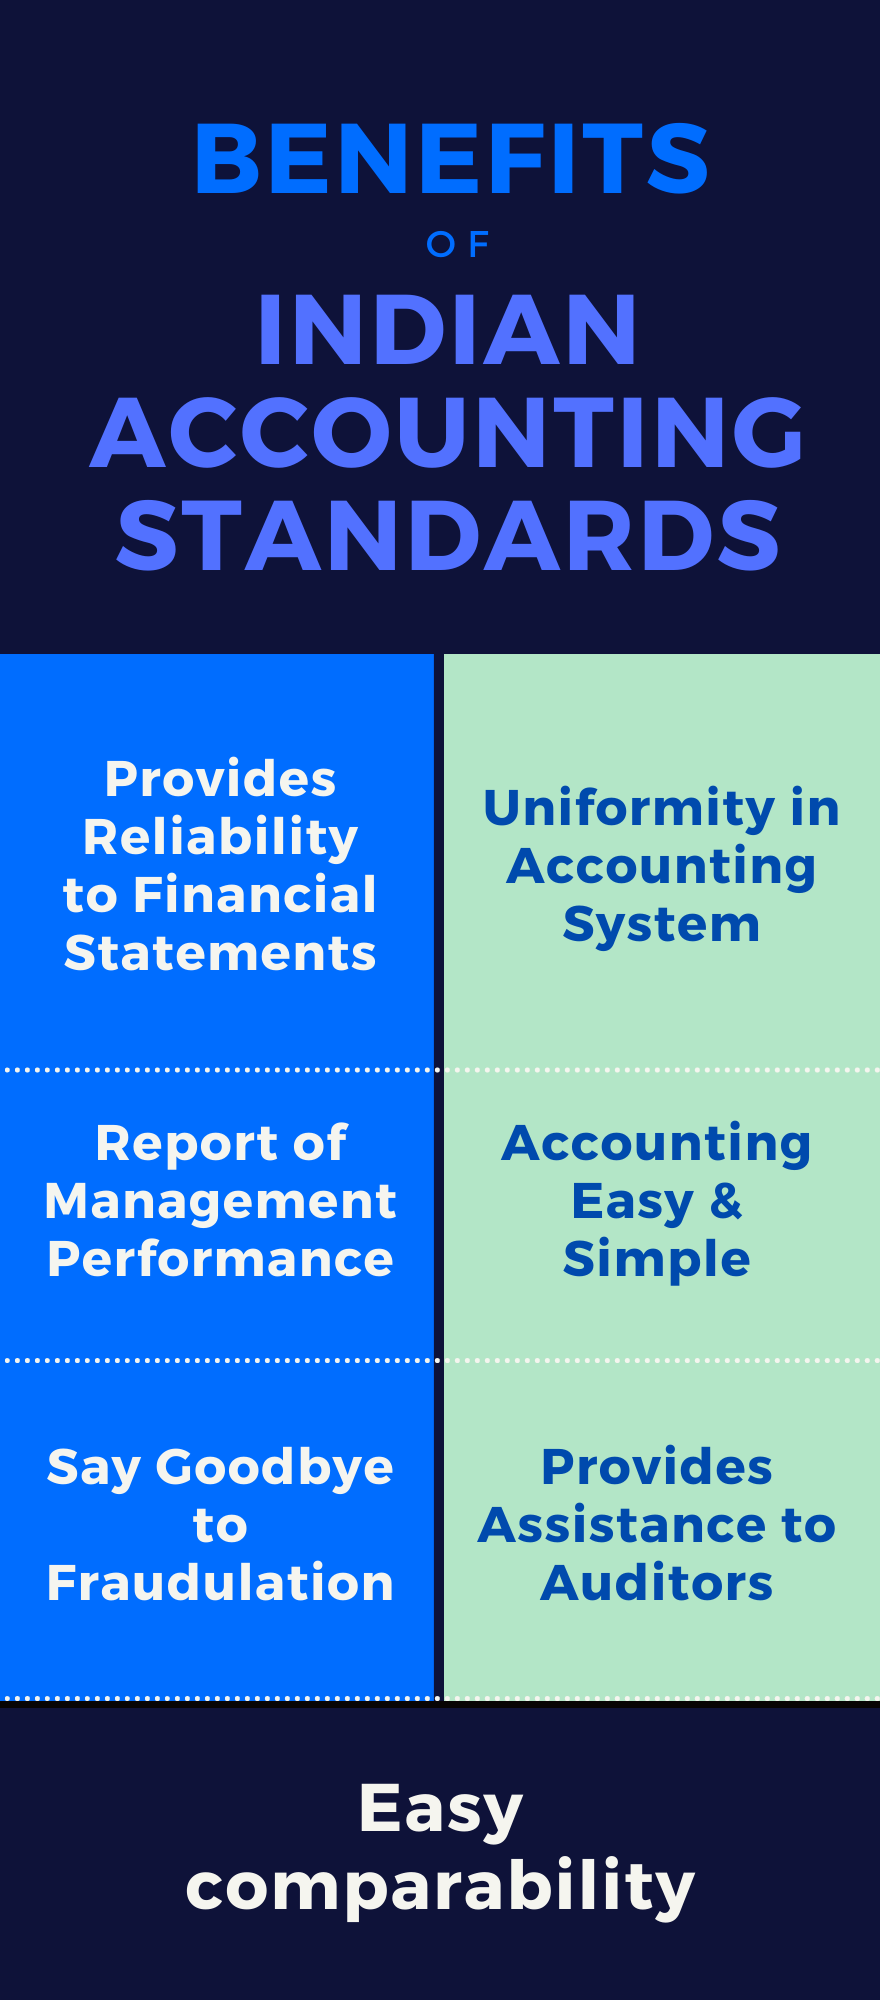 Benefits of Indian accounting standards